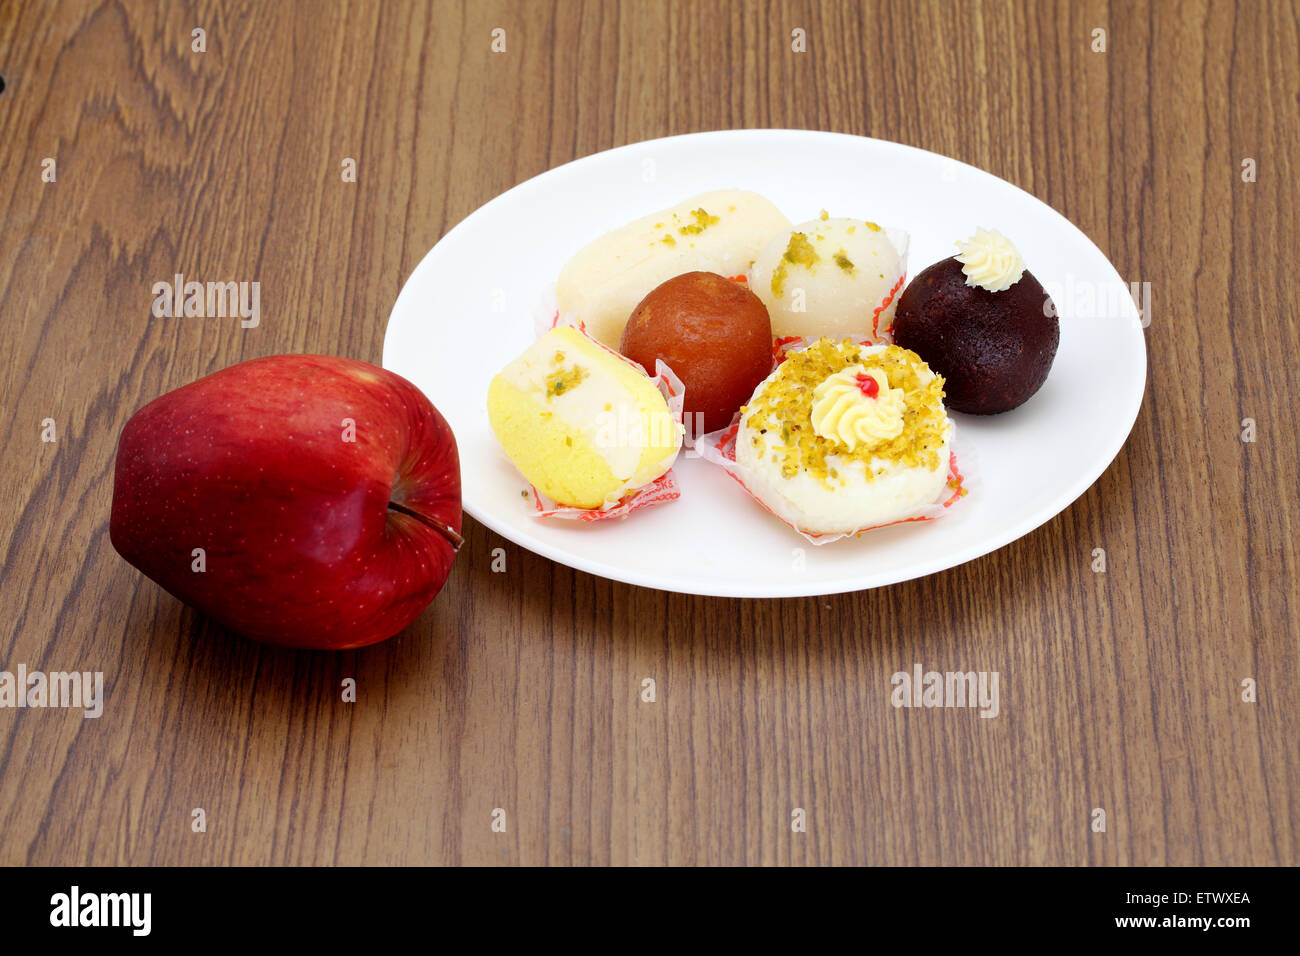 Indian sweets and apple on a wooden table - Stock Image